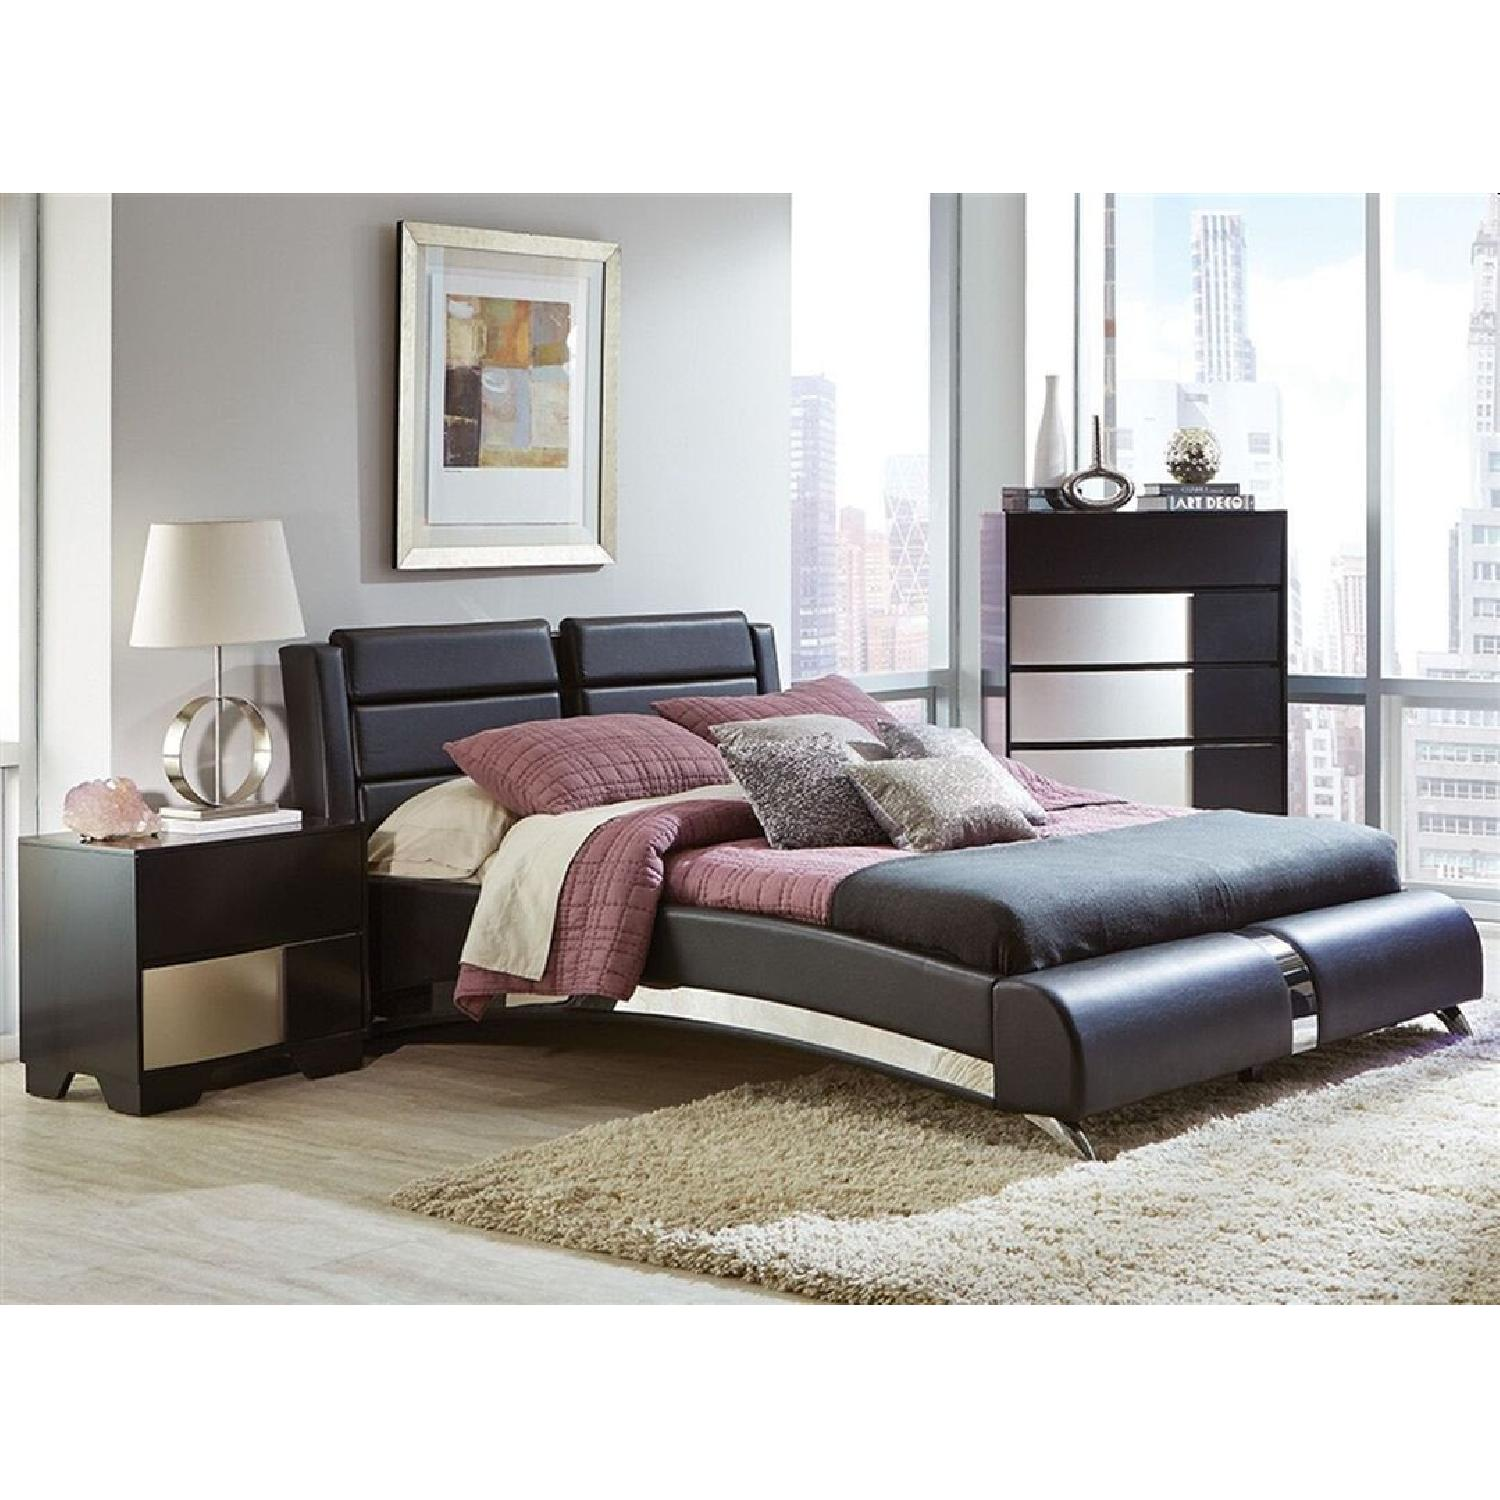 Queen Platform Bed In Black Leatherette w/ Chrome Accent - image-6